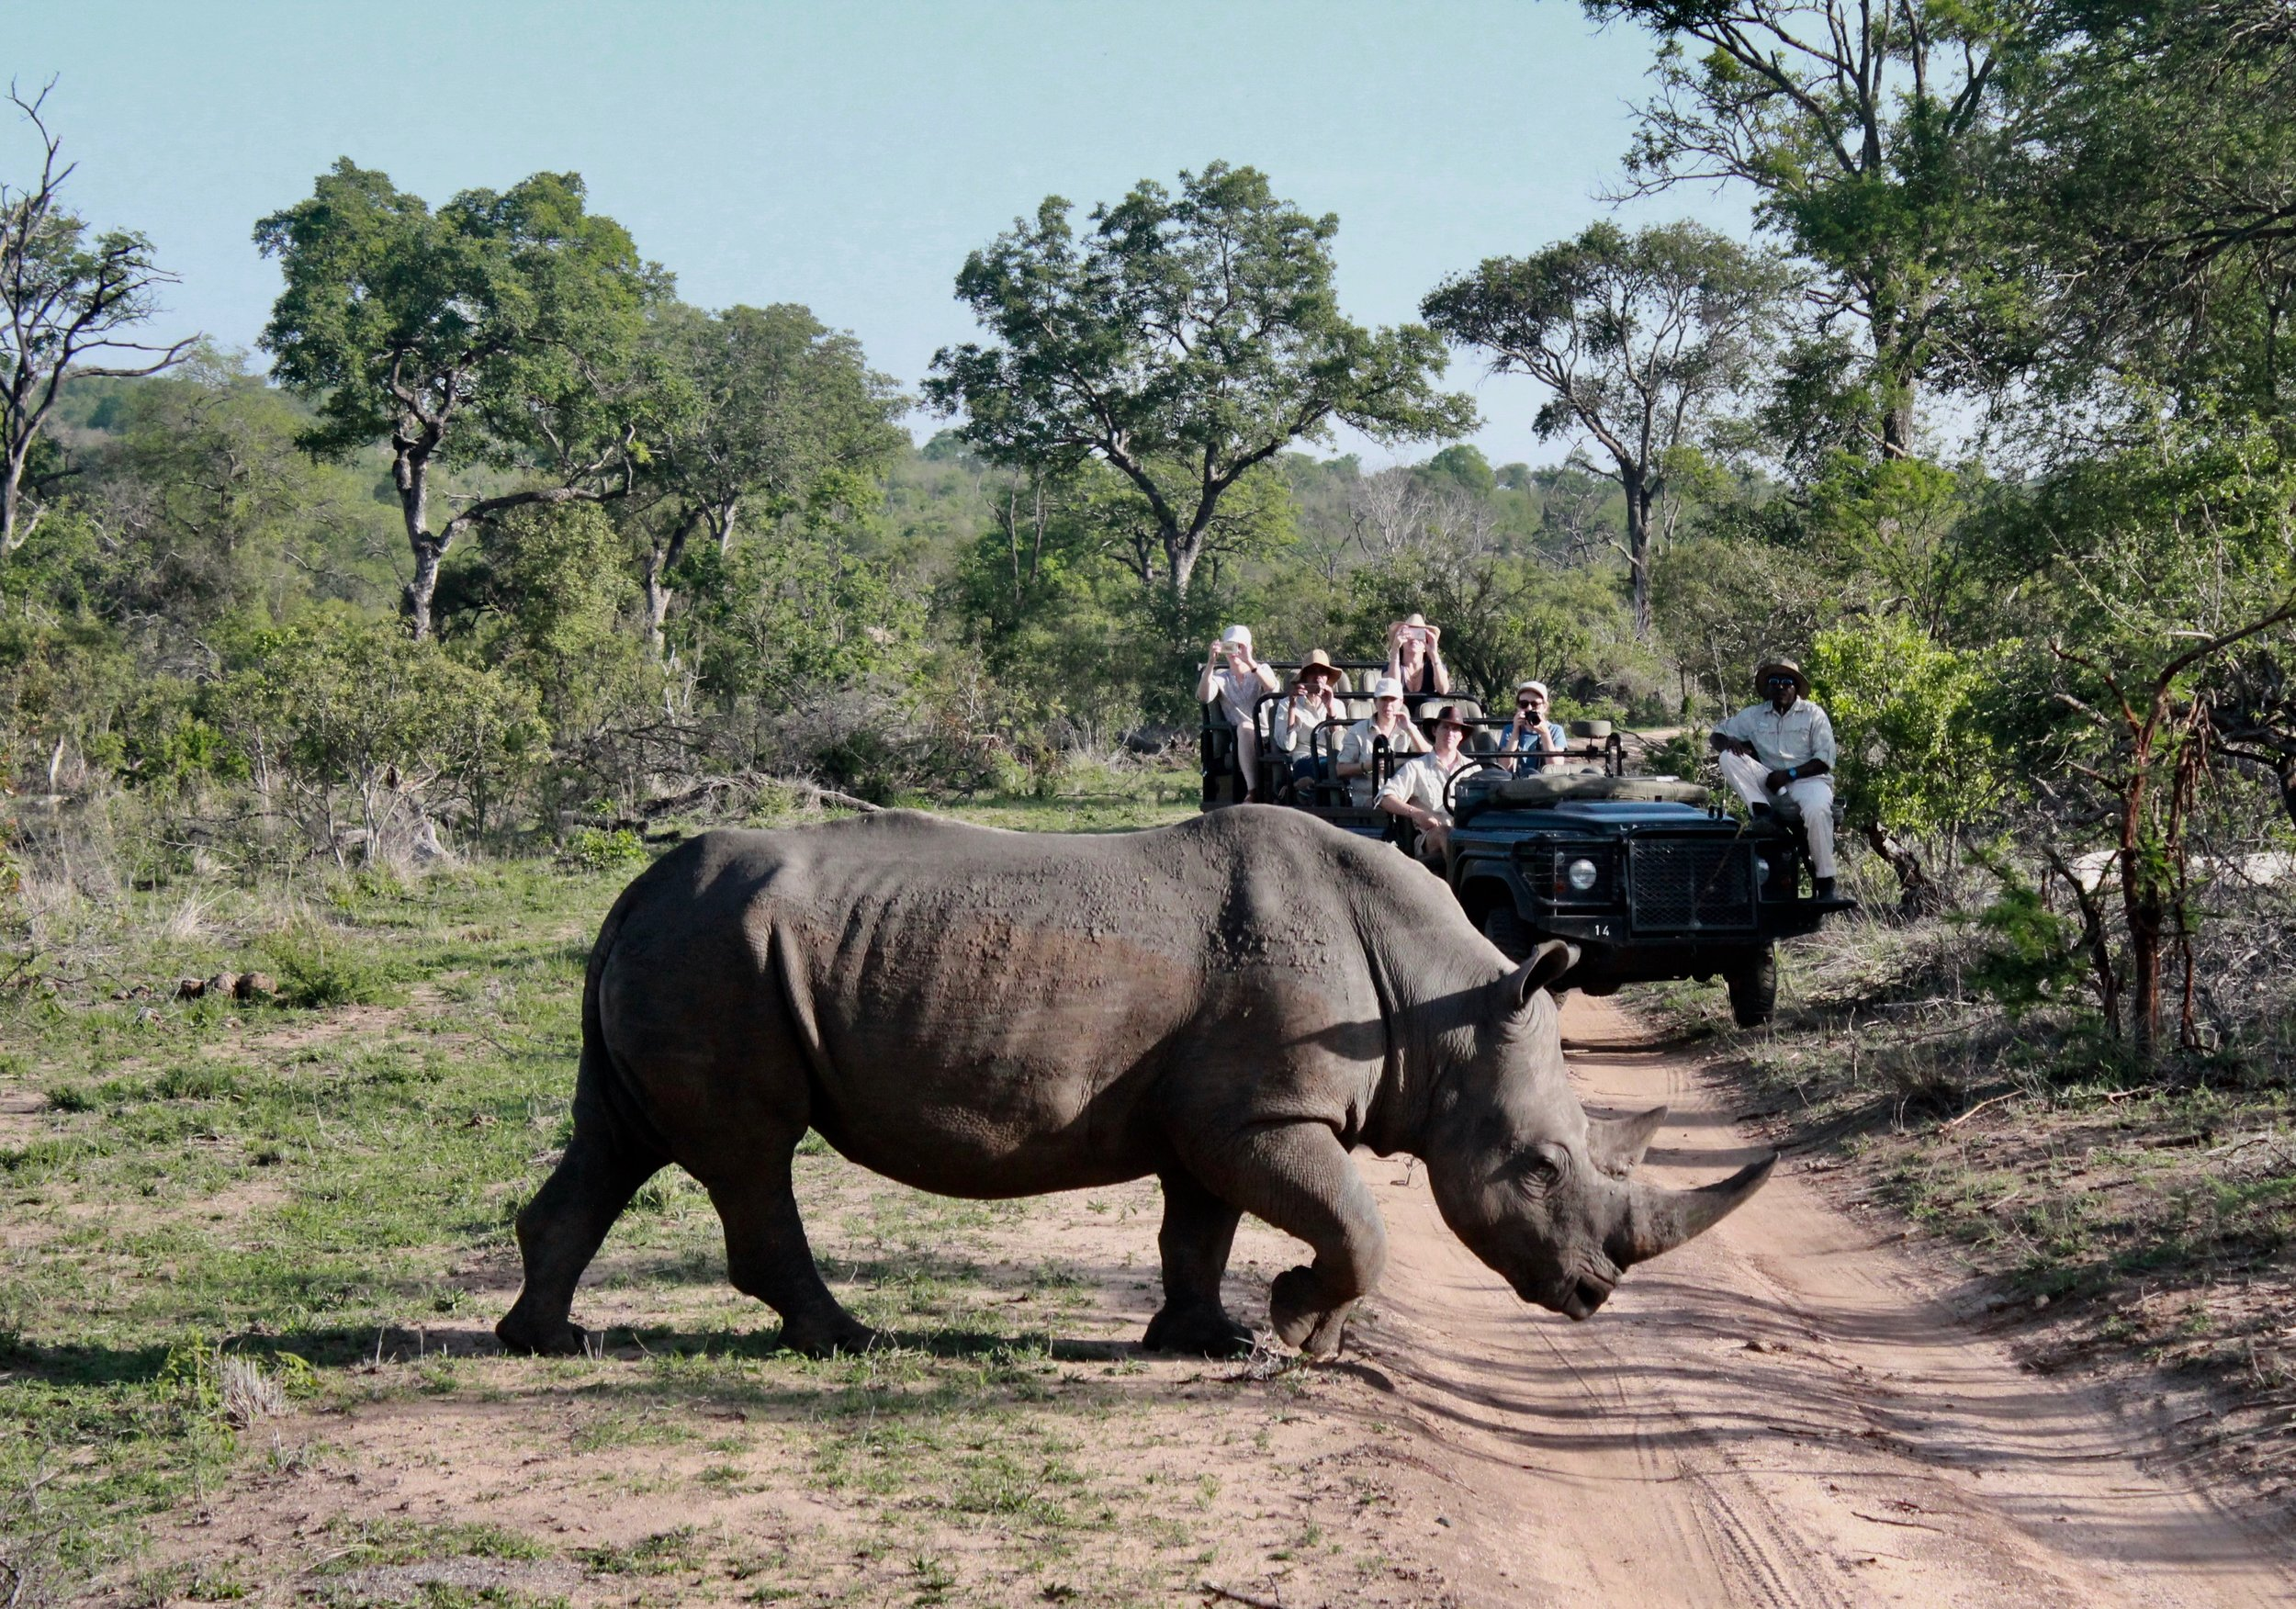 Over and Above Africa first anti-poaching research trip to South Africa - photo by kind permission of Kerry David